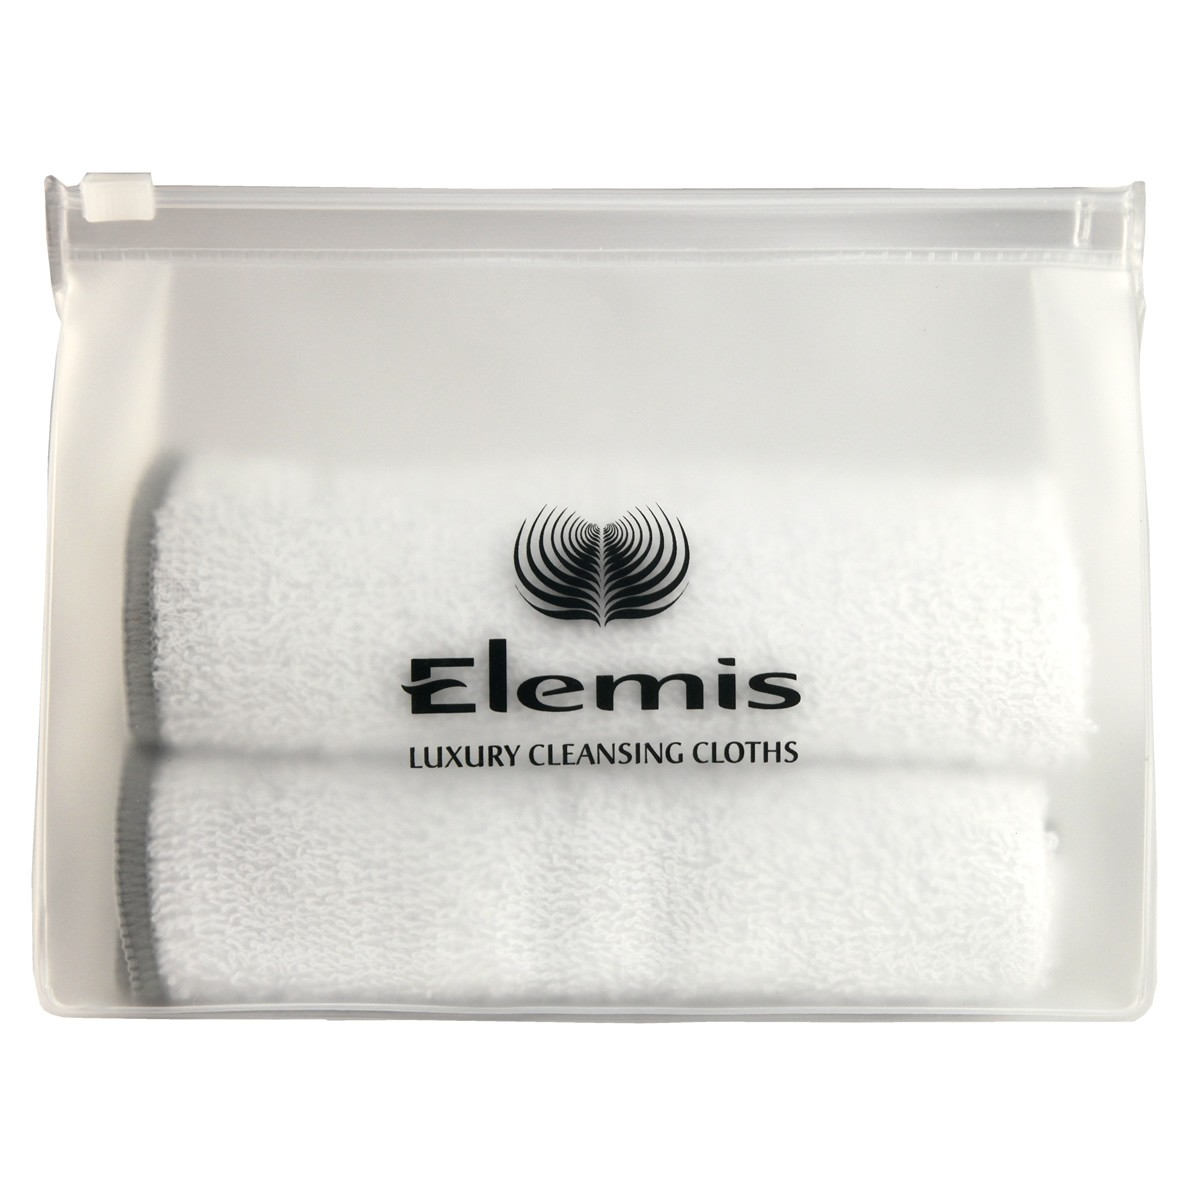 Elemis Luxury Cleansing Cloths